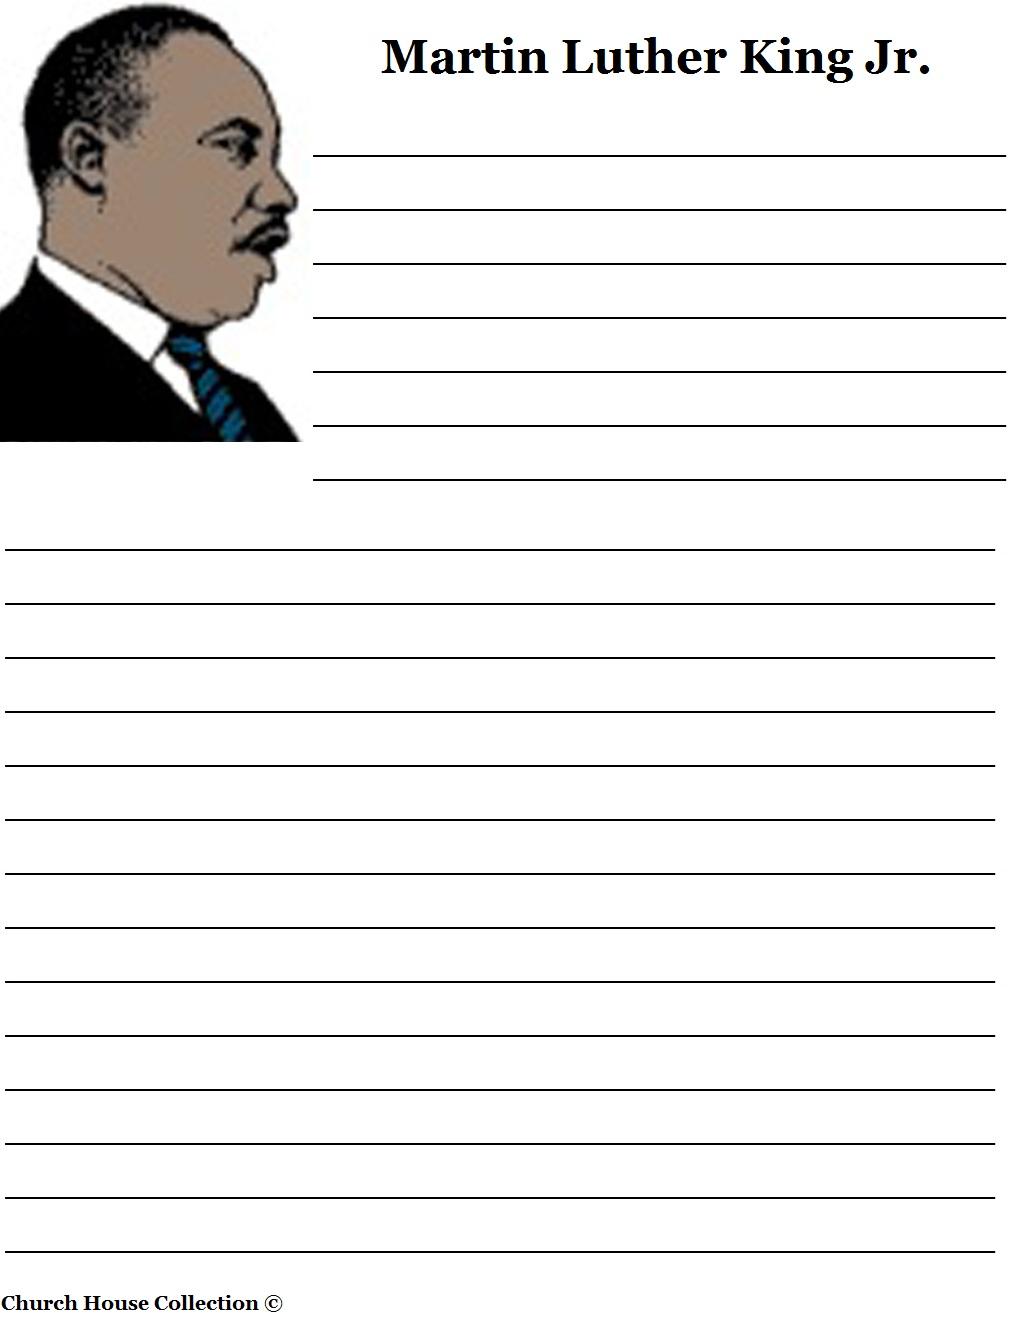 martin luther king jr writing paper martin luther king jr writing paper printable version